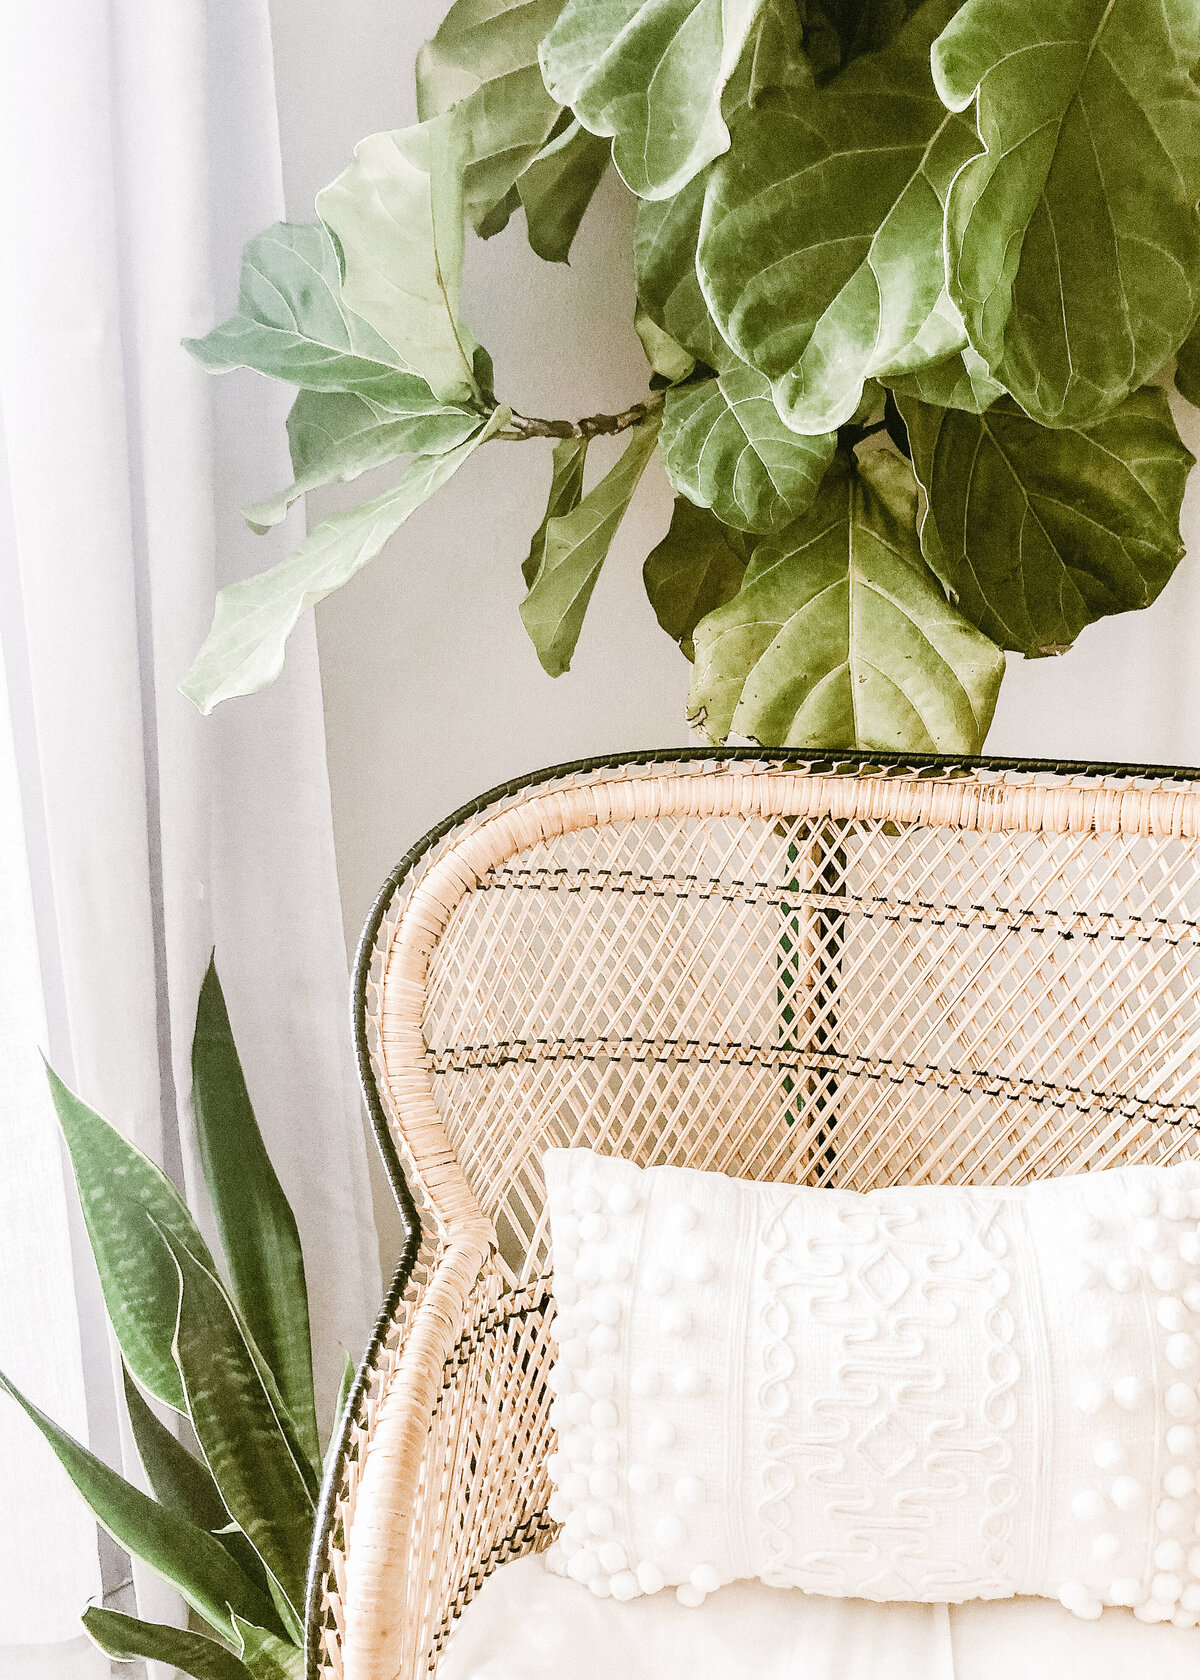 A natural rattan chair with a textured white cushion has a large fig tree behind it as interior decor.